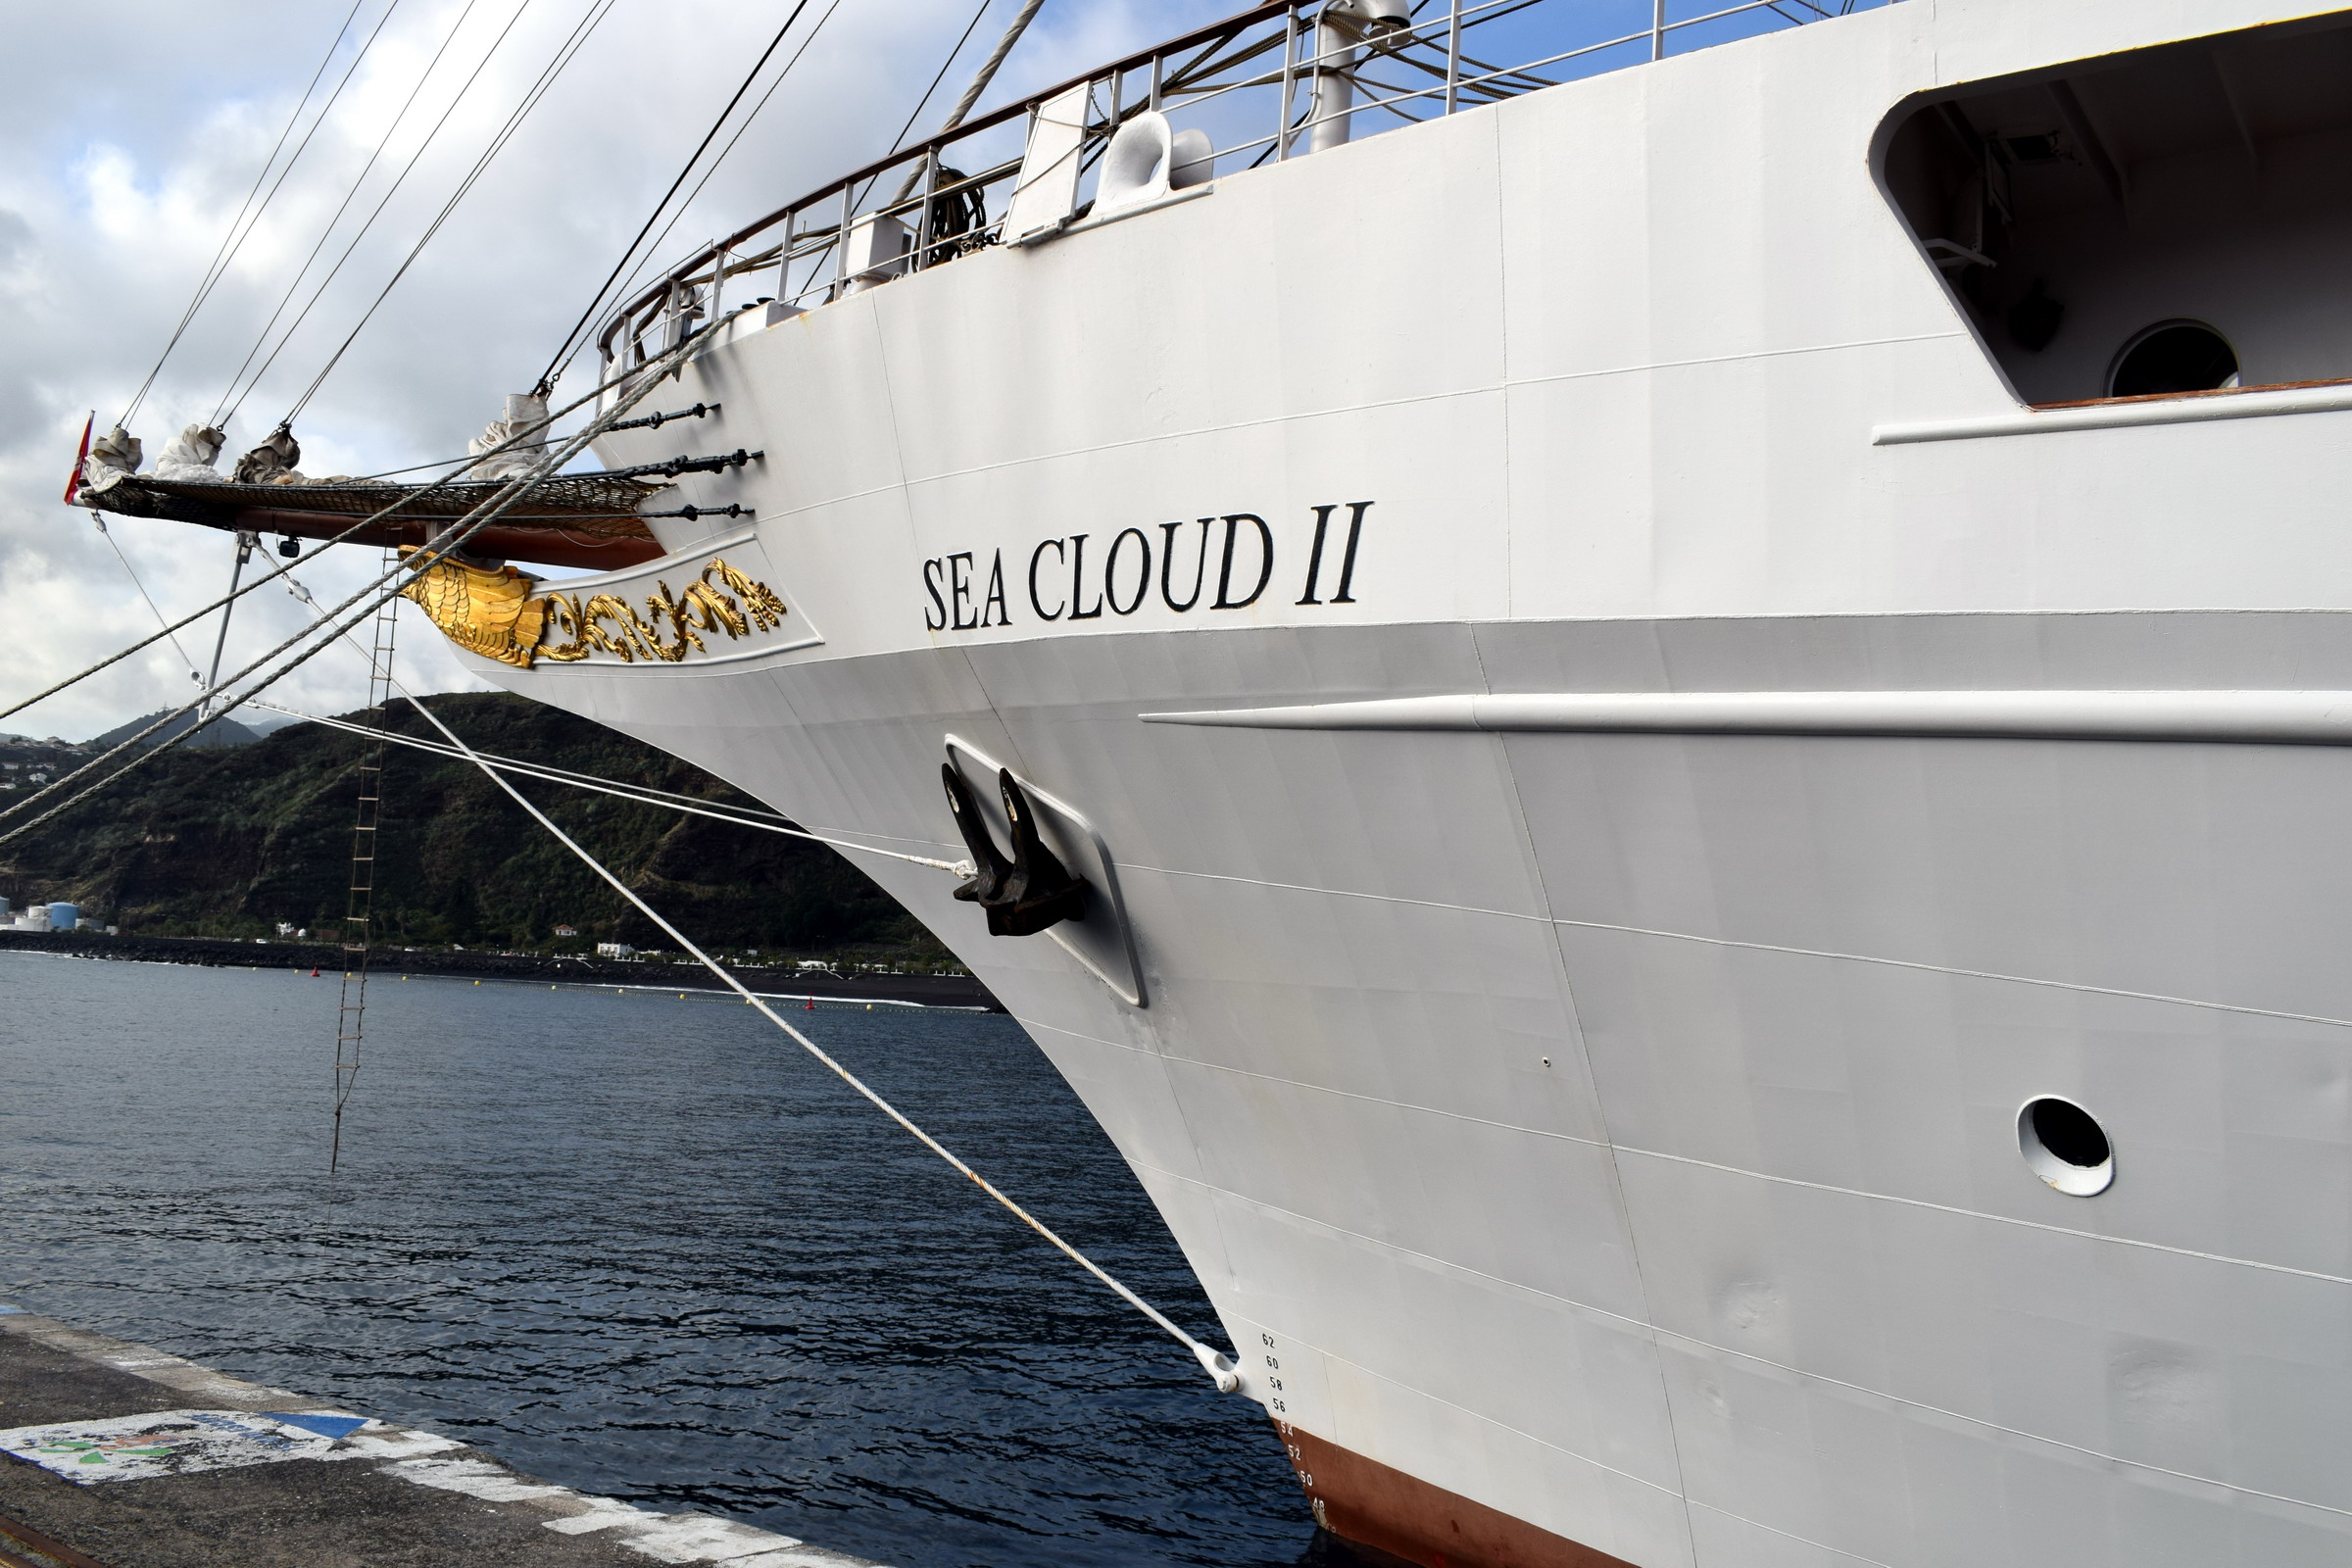 49SEA_CLOUD_II_9171292_©Jorge_L